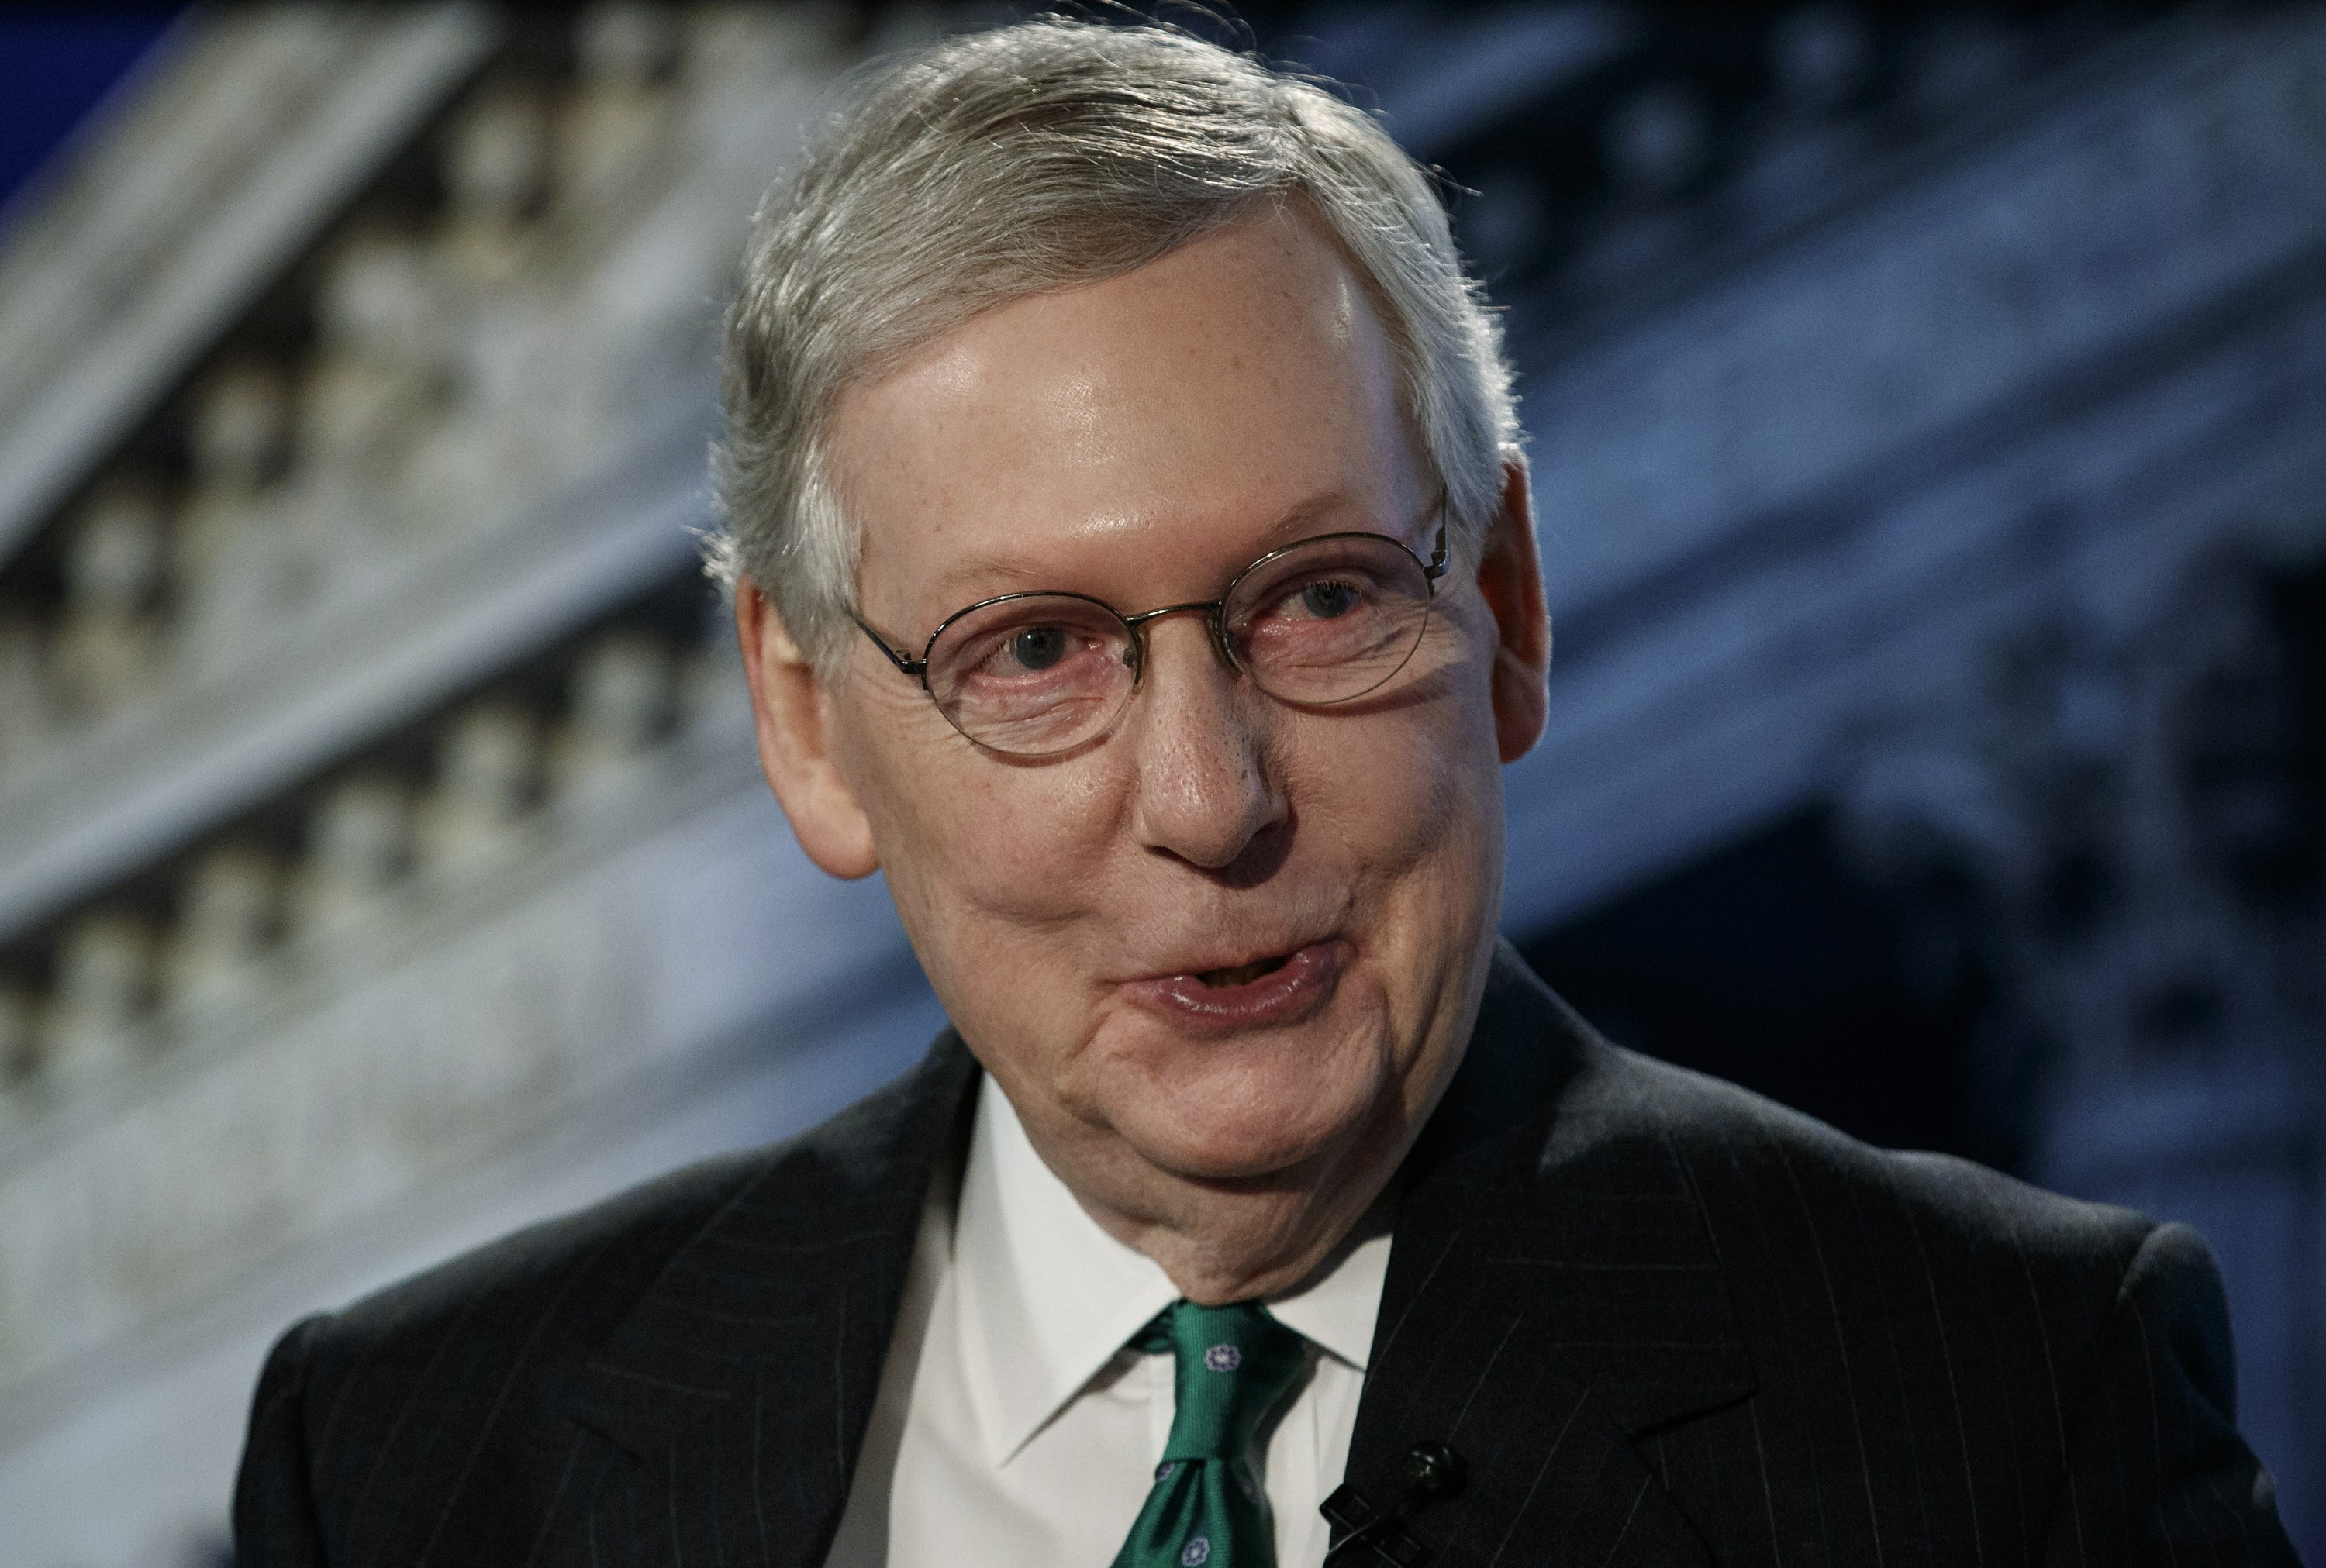 Watch Mitch McConnell: Nobodys going to beat Lisa Murkowski in Alaska video